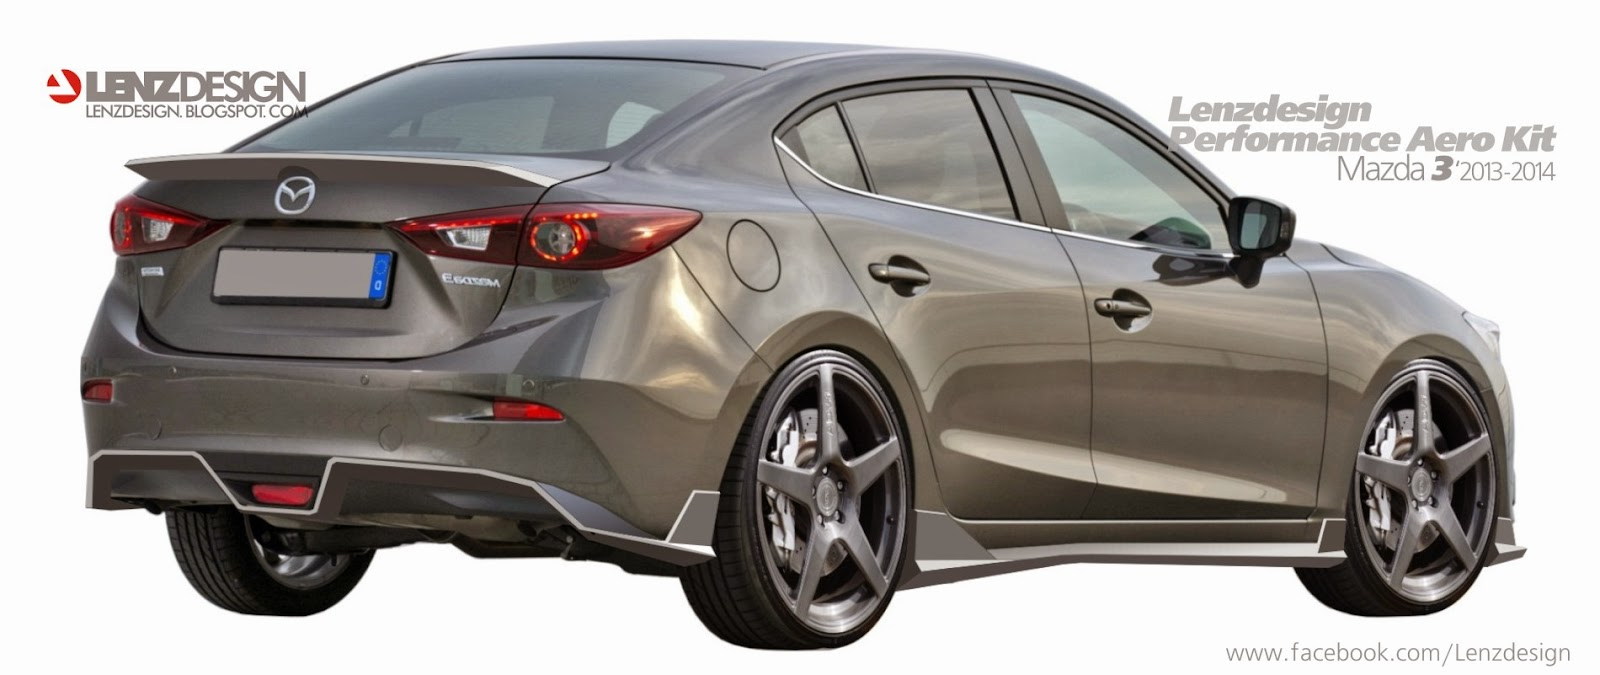 1000 Images About Mazda3 On Pinterest